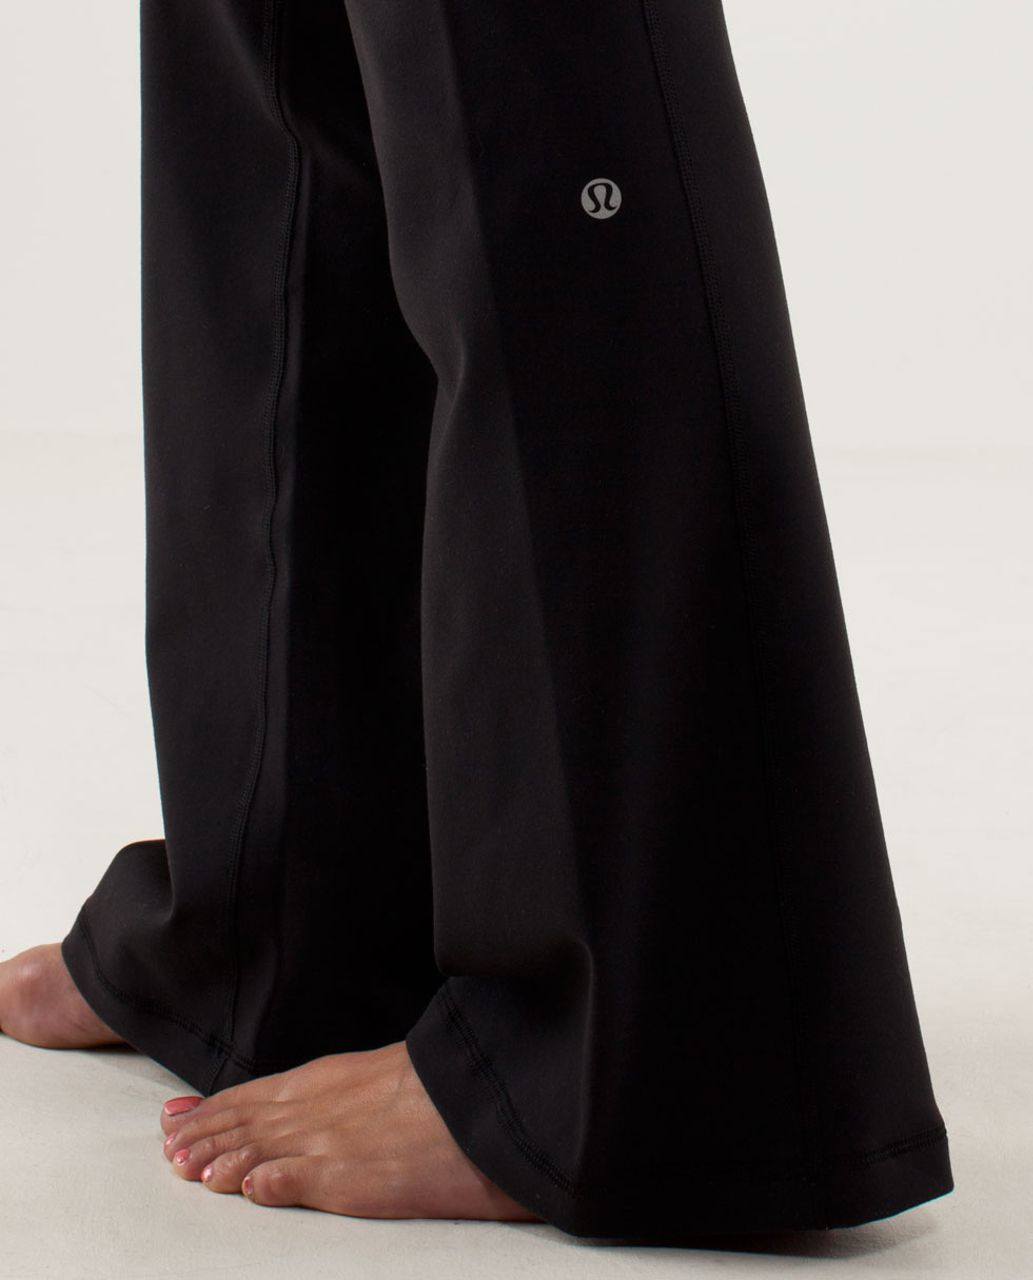 Lululemon Groove Pant (Regular) - Black / Quilt Summer13 10